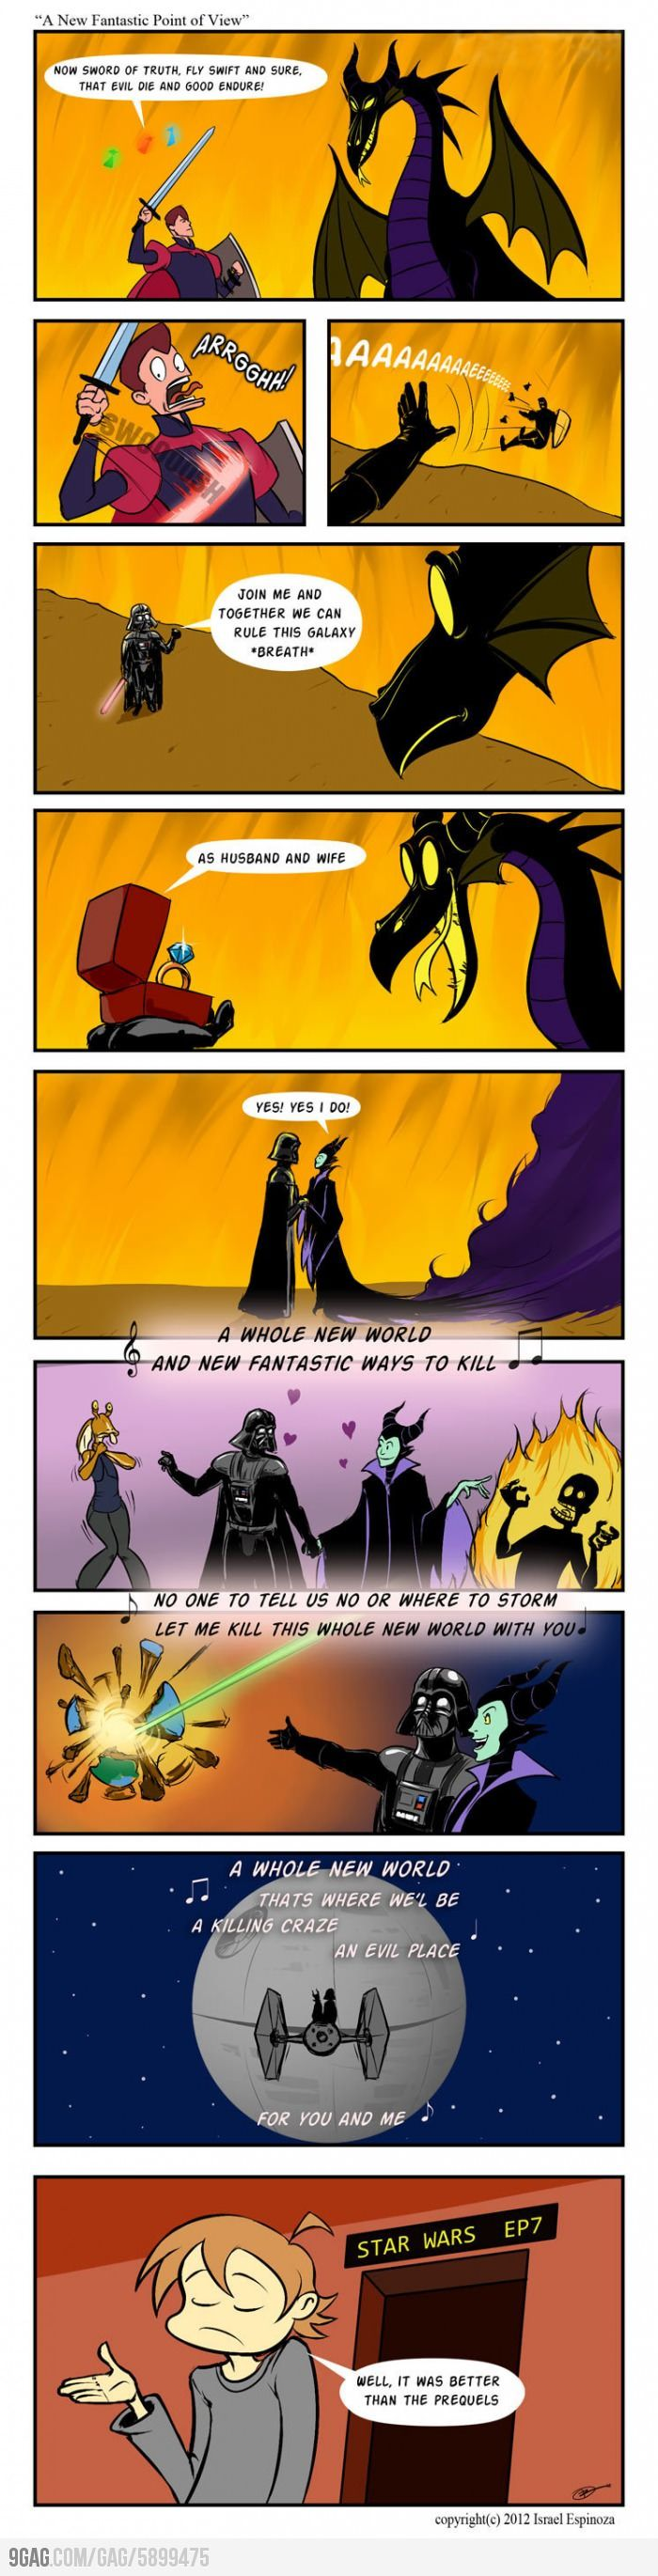 Darth Vader and Maleficent, epic love story